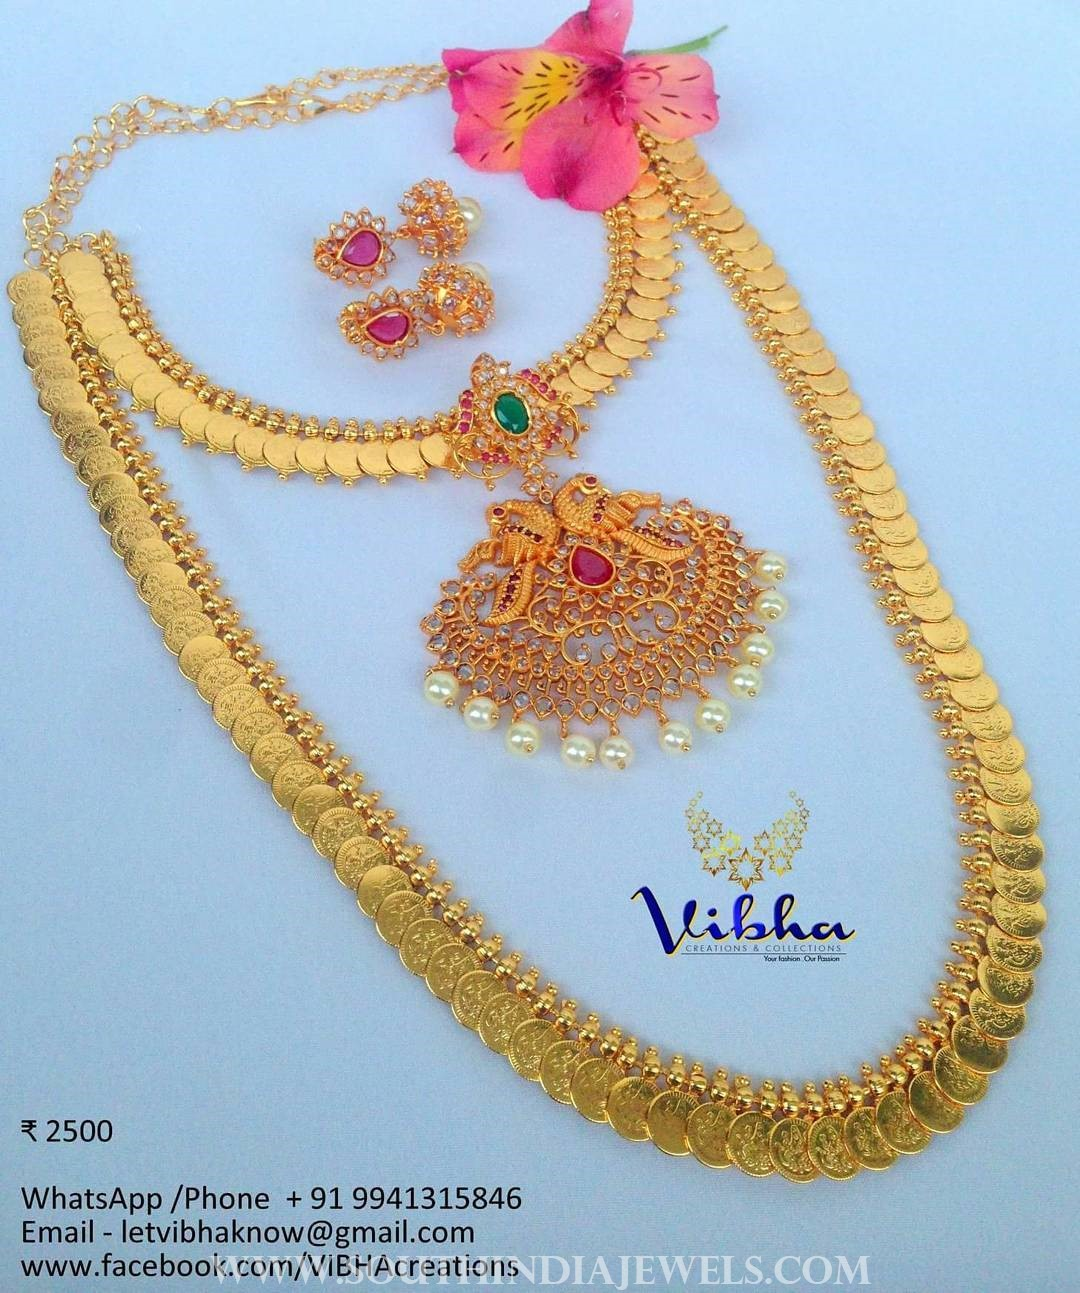 823b582c69 One Gram Gold Coin Jewellery From Vibha Creations ~ South India Jewels